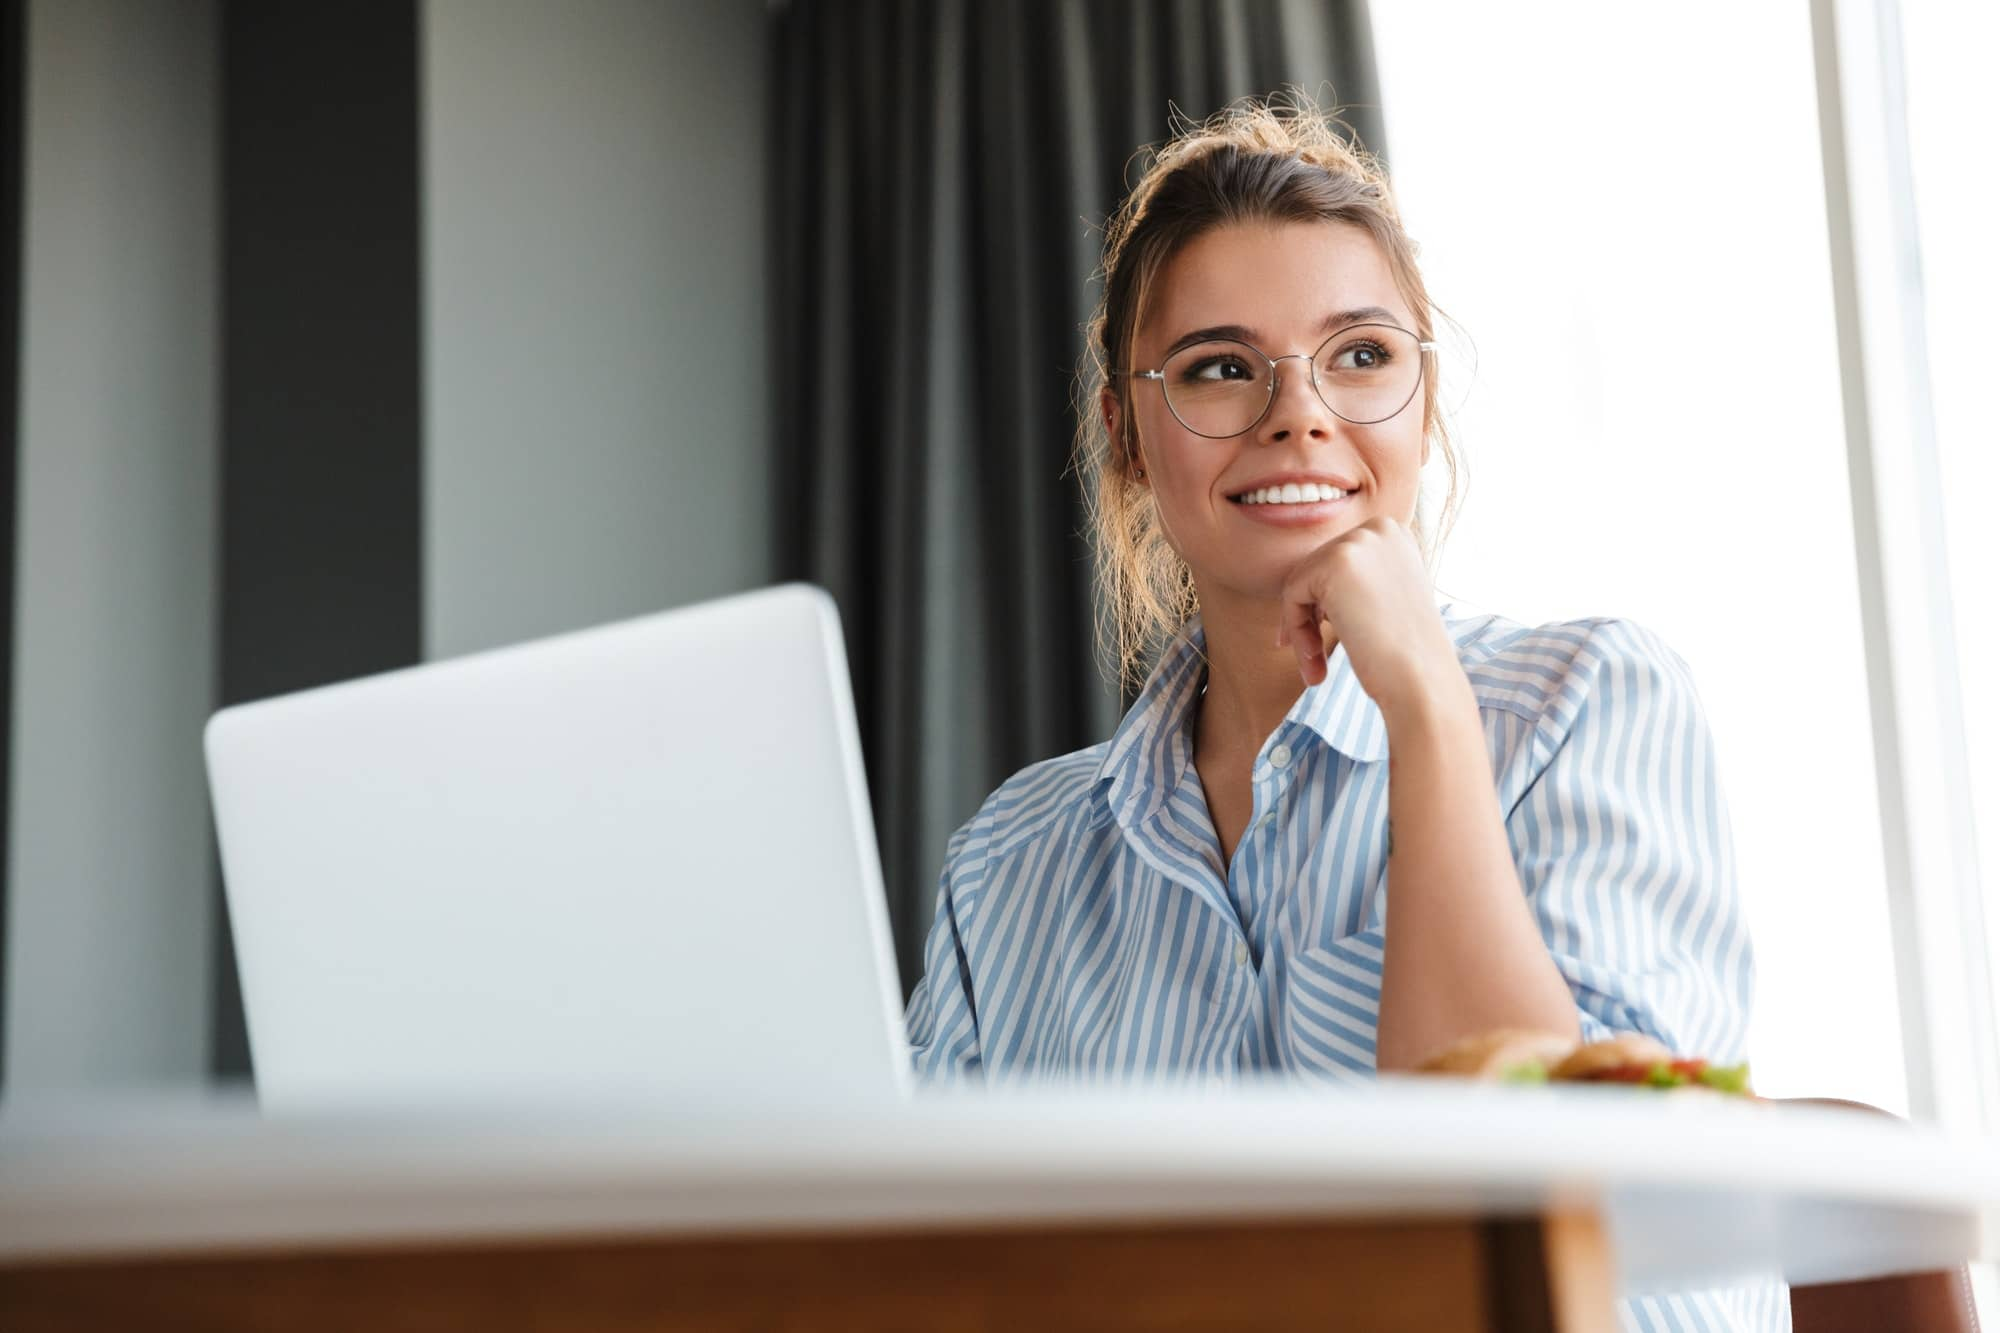 Image of happy nice woman working with laptop and smiling